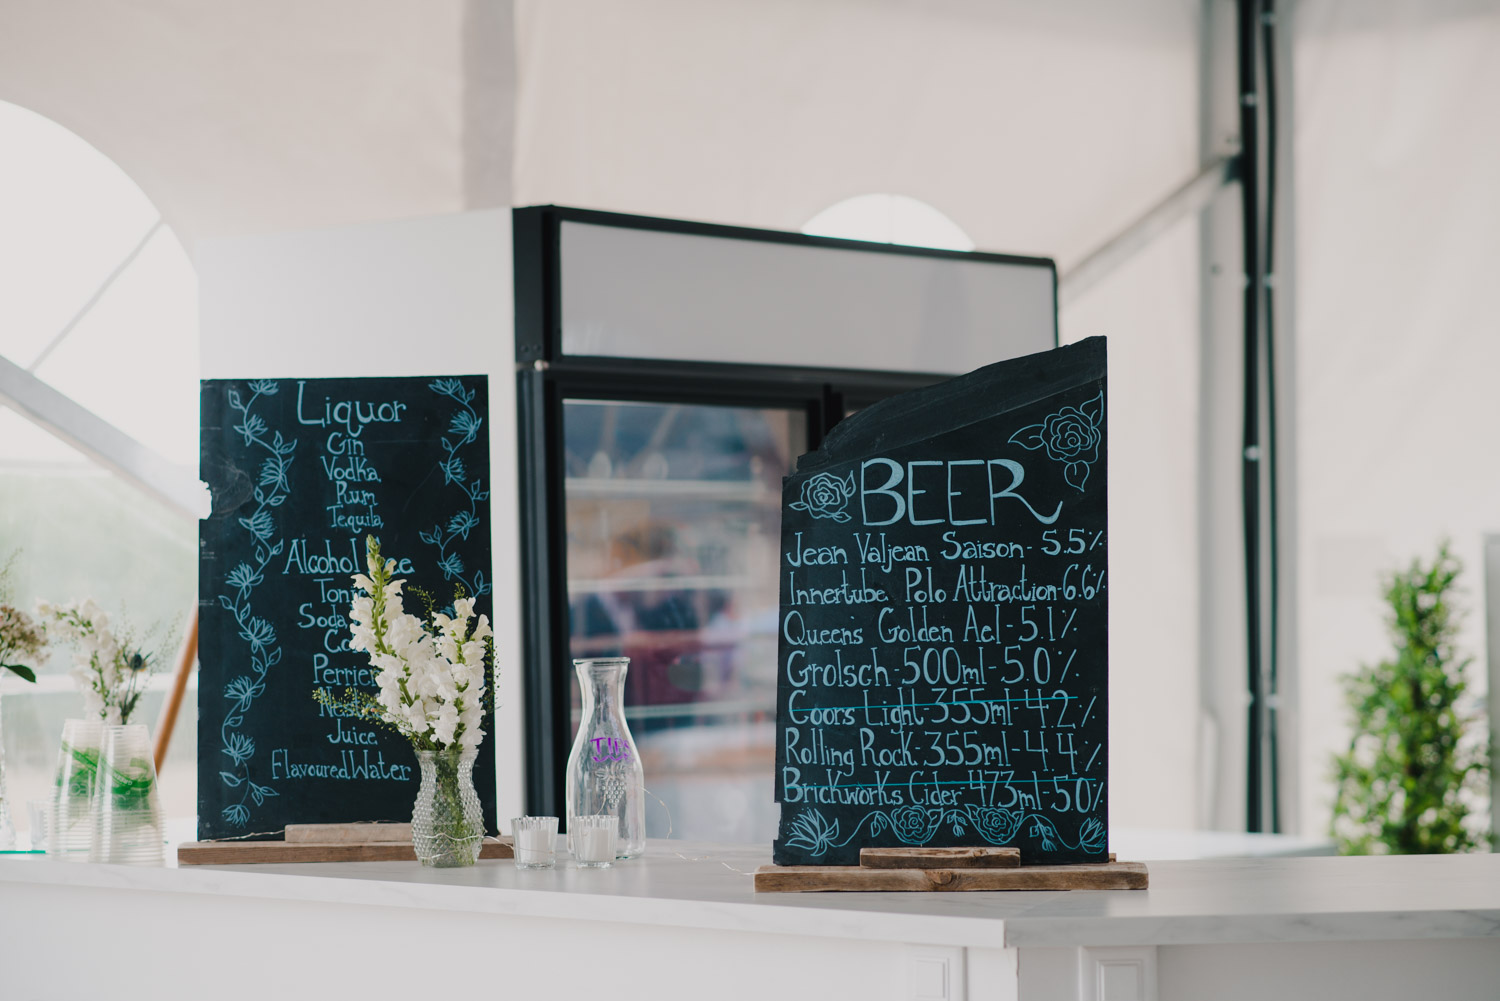 The beer menu, complete with craft beers with personalized titles for the couple